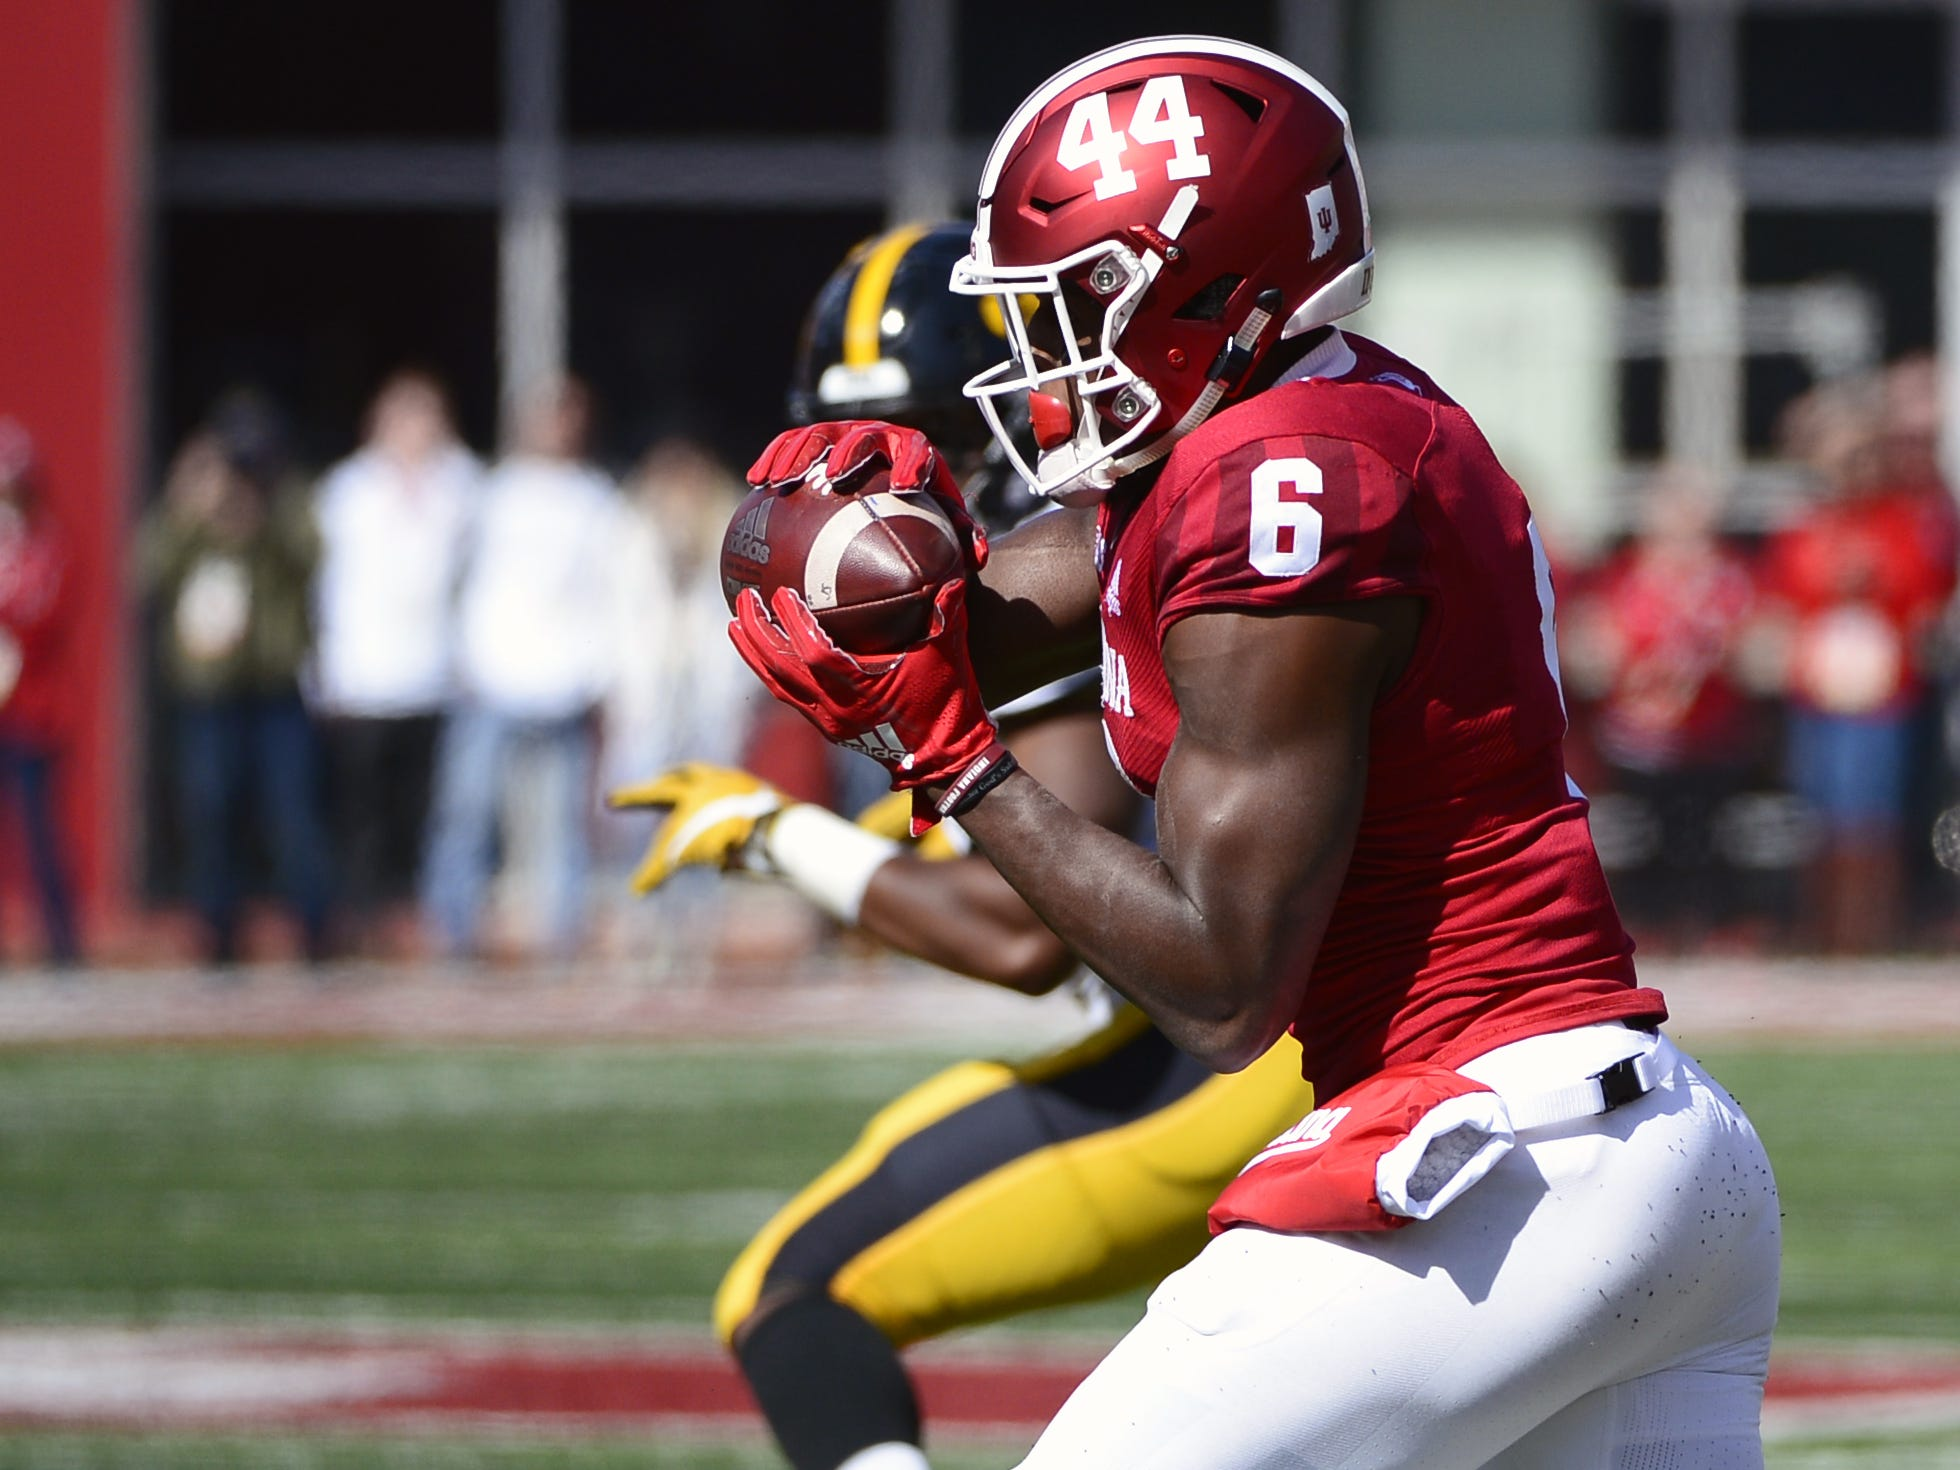 Indiana Hoosiers wide receiver Donovan Hale (6) catches a pass against Iowa at Memorial Stadium in Bloomington, Ind., on Saturday, Oct. 13, 2018.